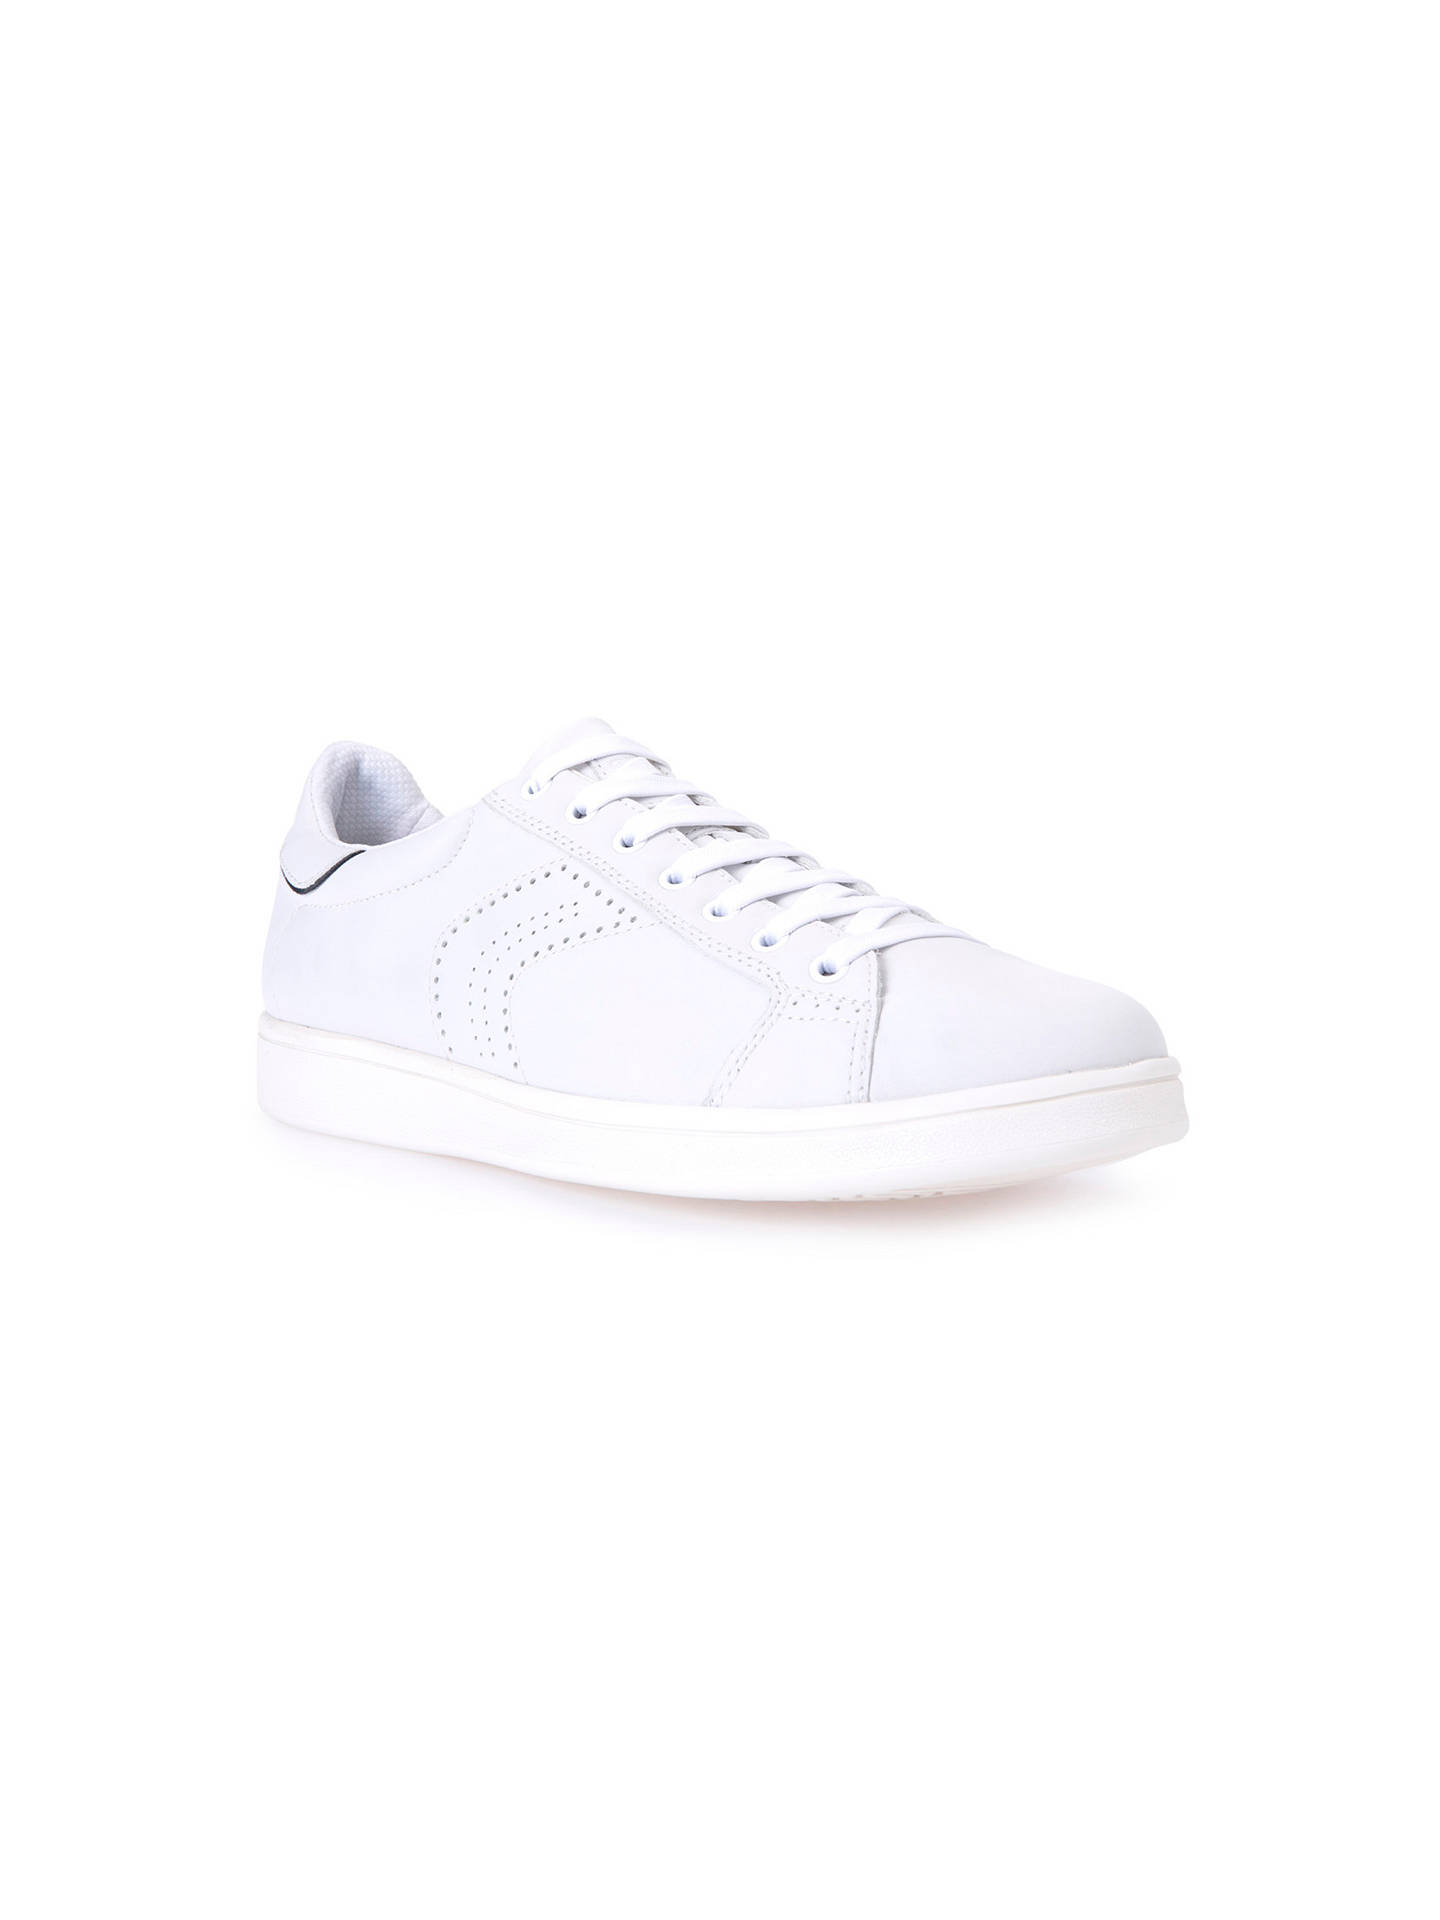 ffc50972de Geox Warrens Trainers, White at John Lewis & Partners